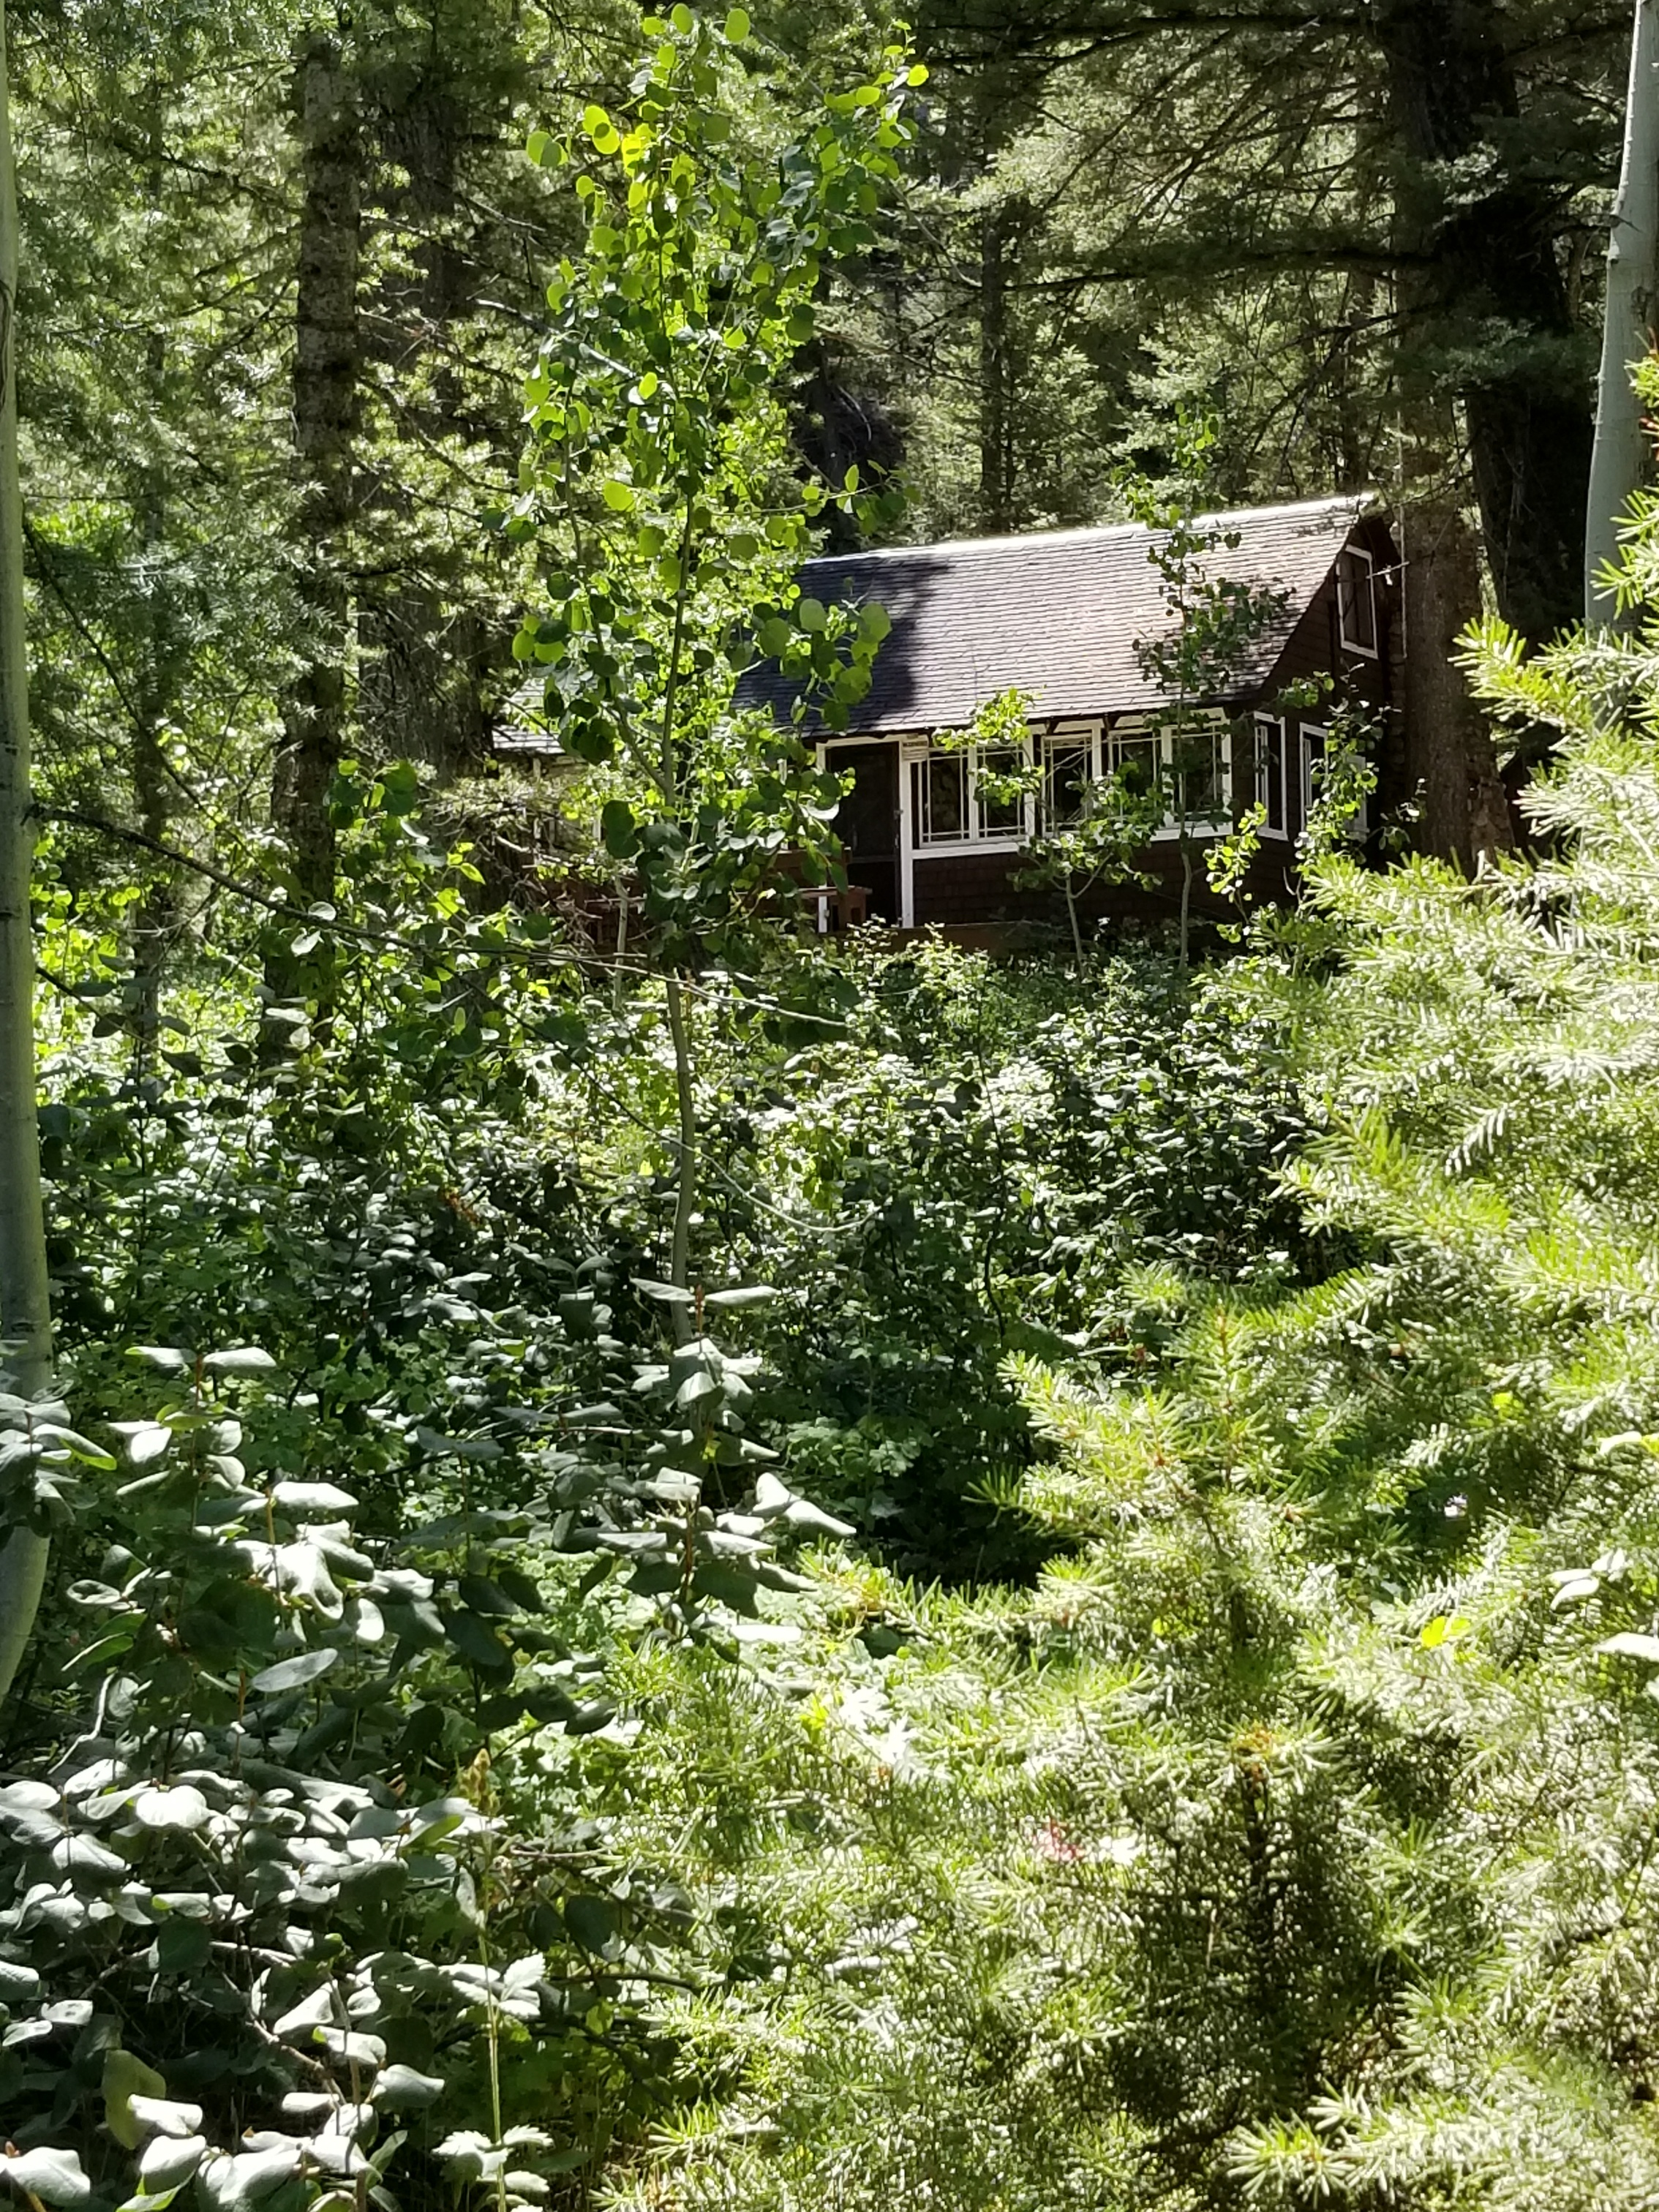 The rustic cabin my family owned near Easley Hot Springs where special memories were made.